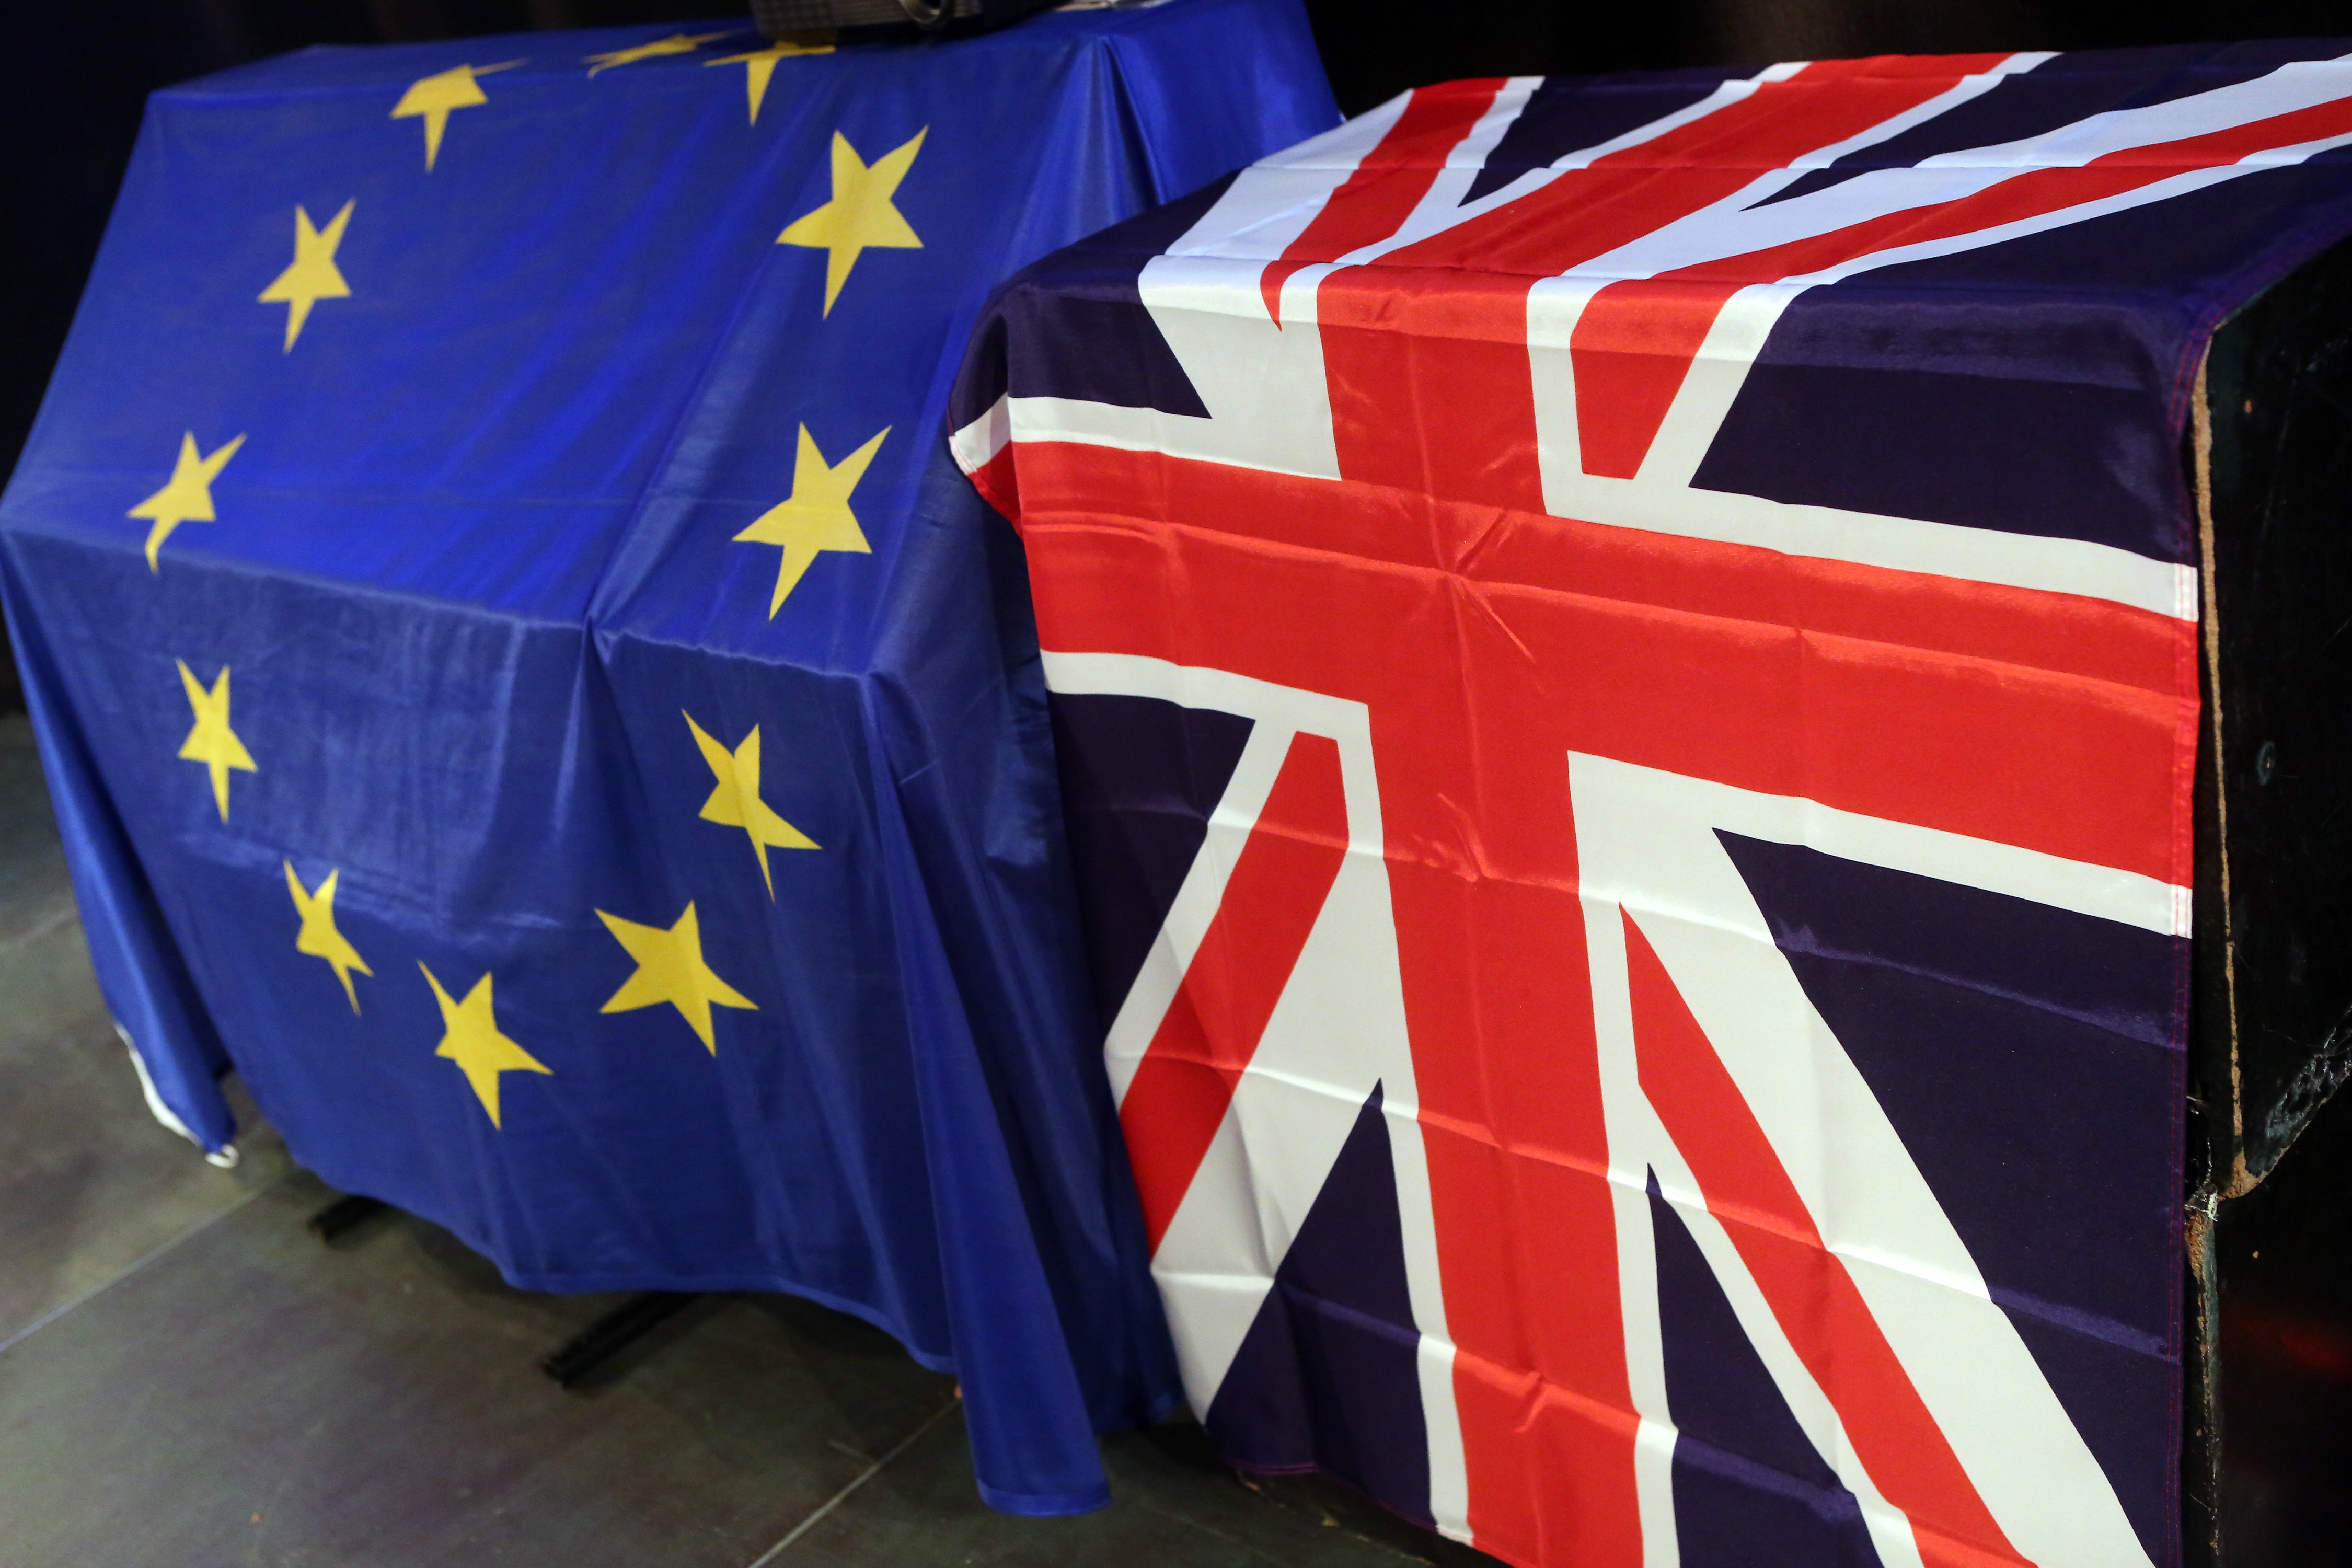 European Union and British Union Jack flags hang at a meeting for British citizens living in Germany to discuss the implications of Great Britain leaving the European Union, known popularly as Brexit, on May 26, 2016 in Berlin, Germany.